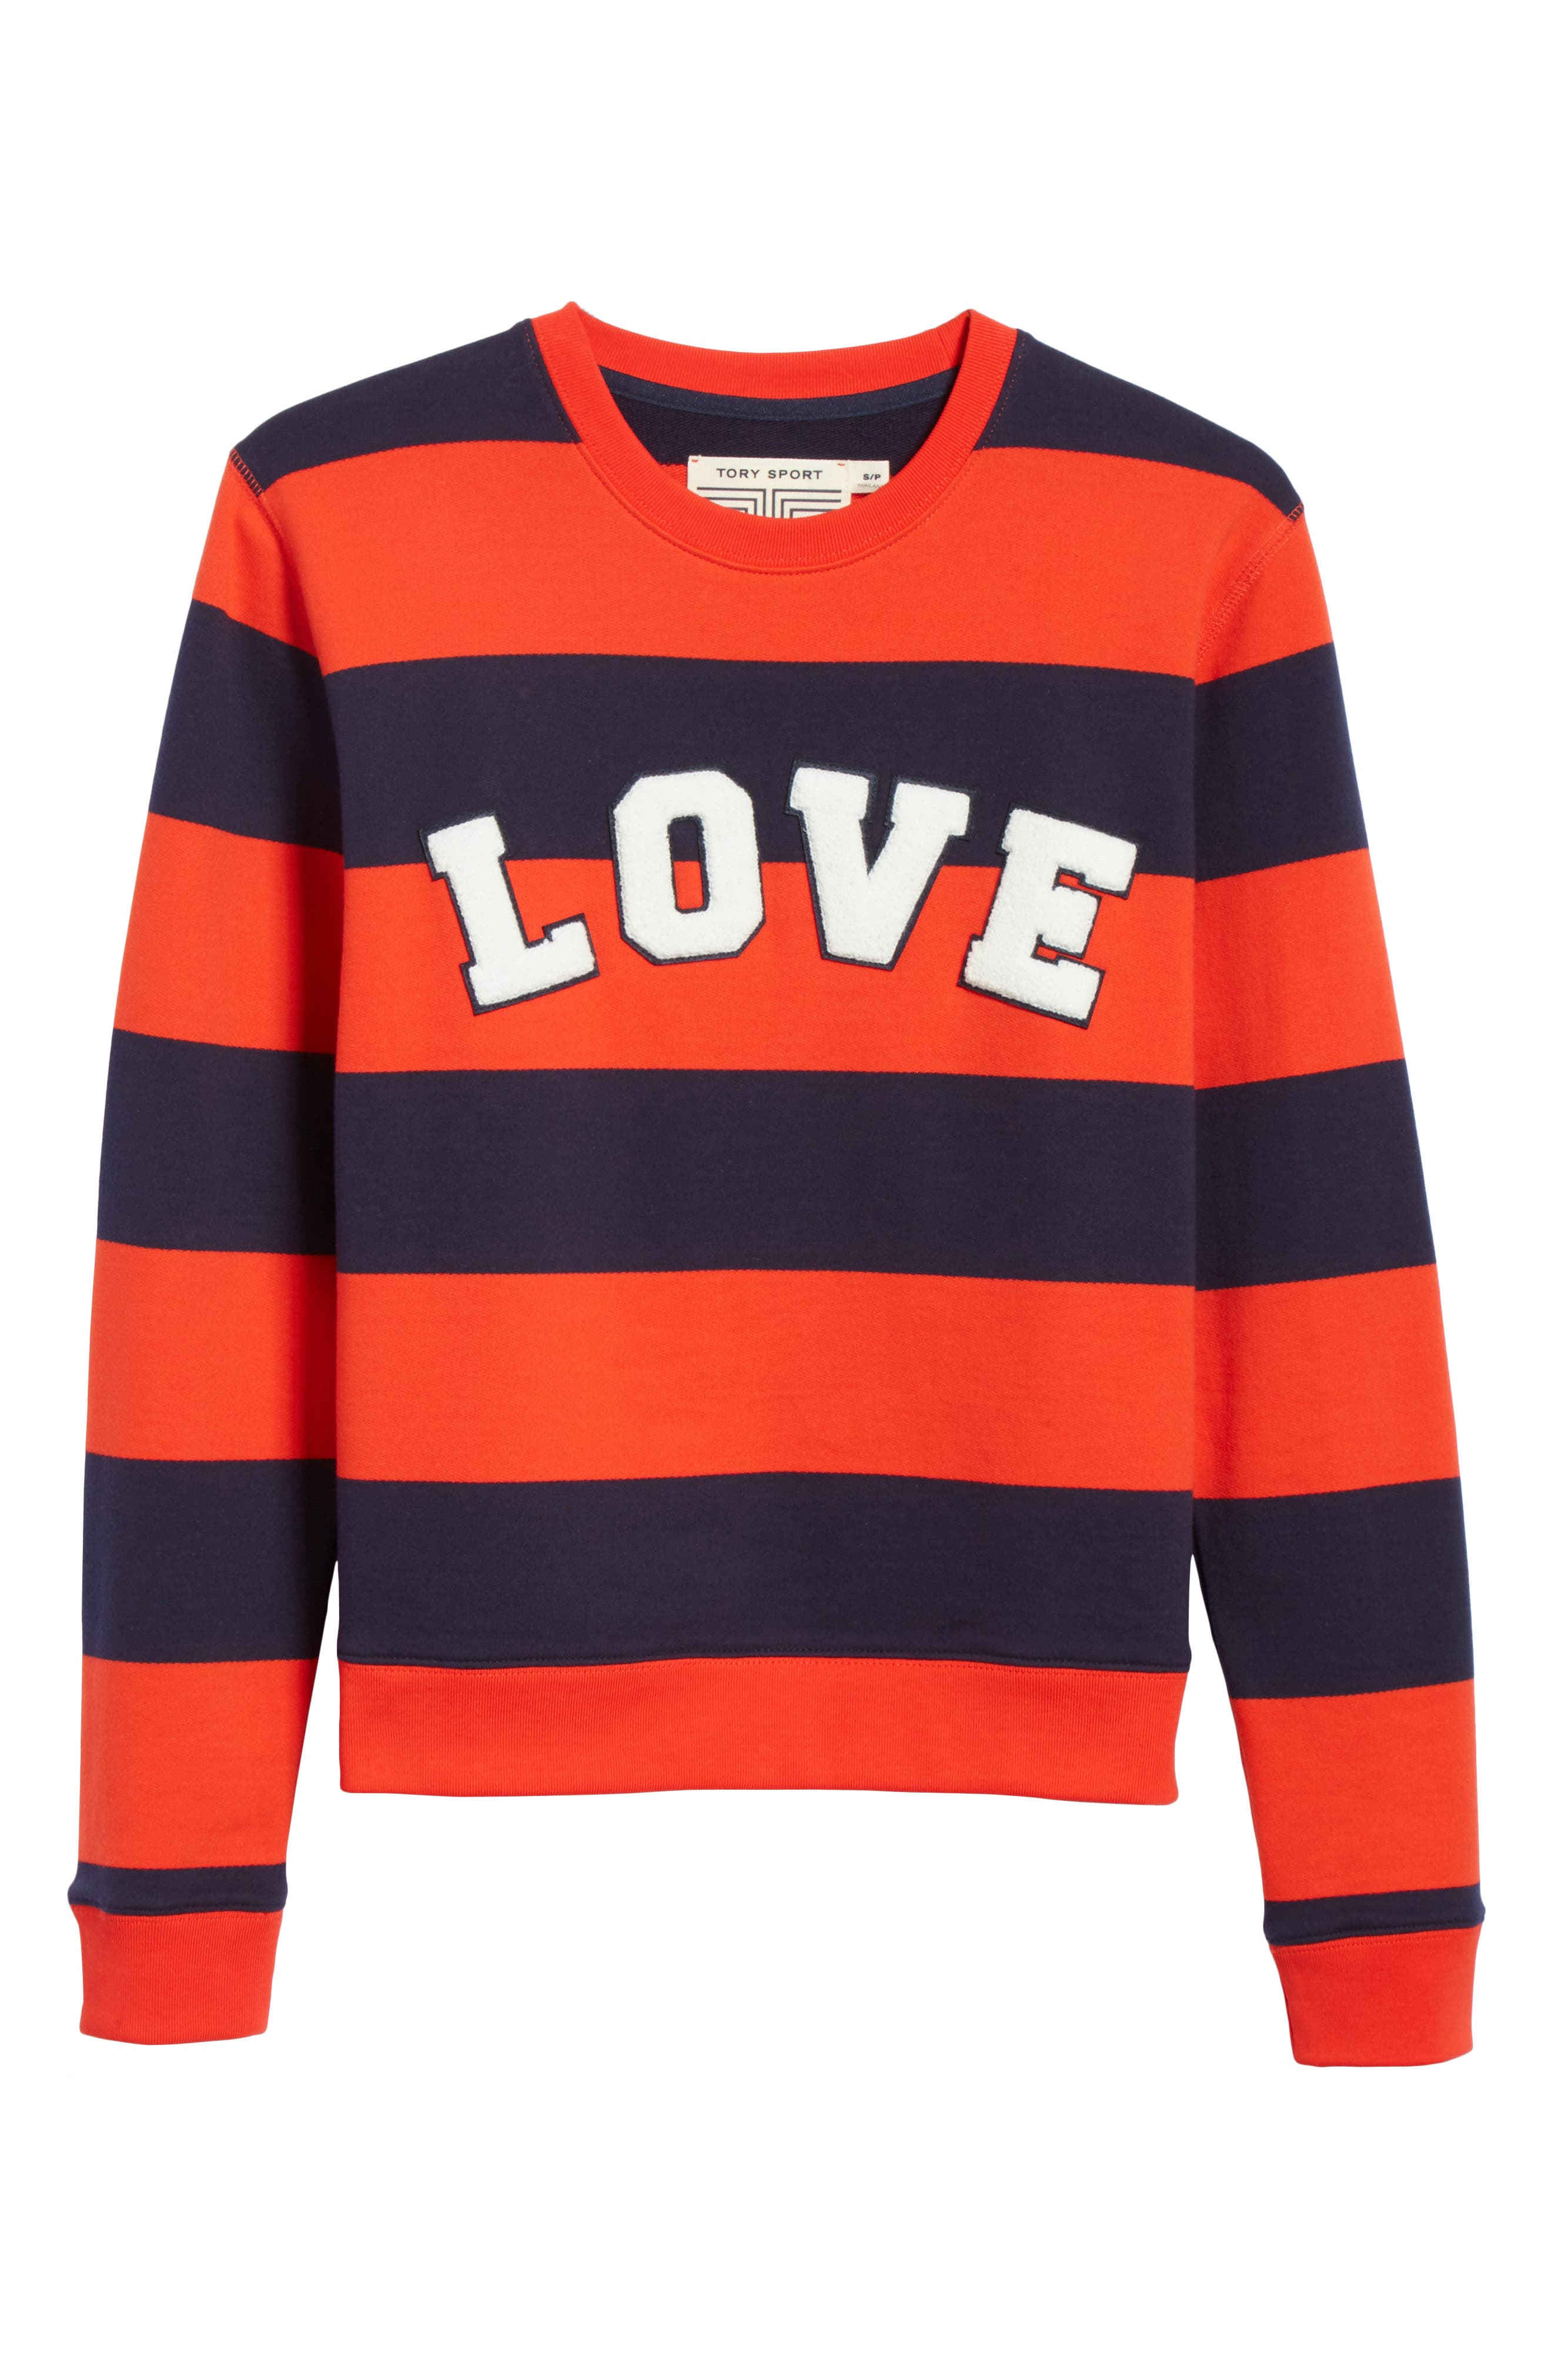 Love Stripe Sweatshirt,                             Alternate thumbnail 6, color,                             RED BROAD STRIPE